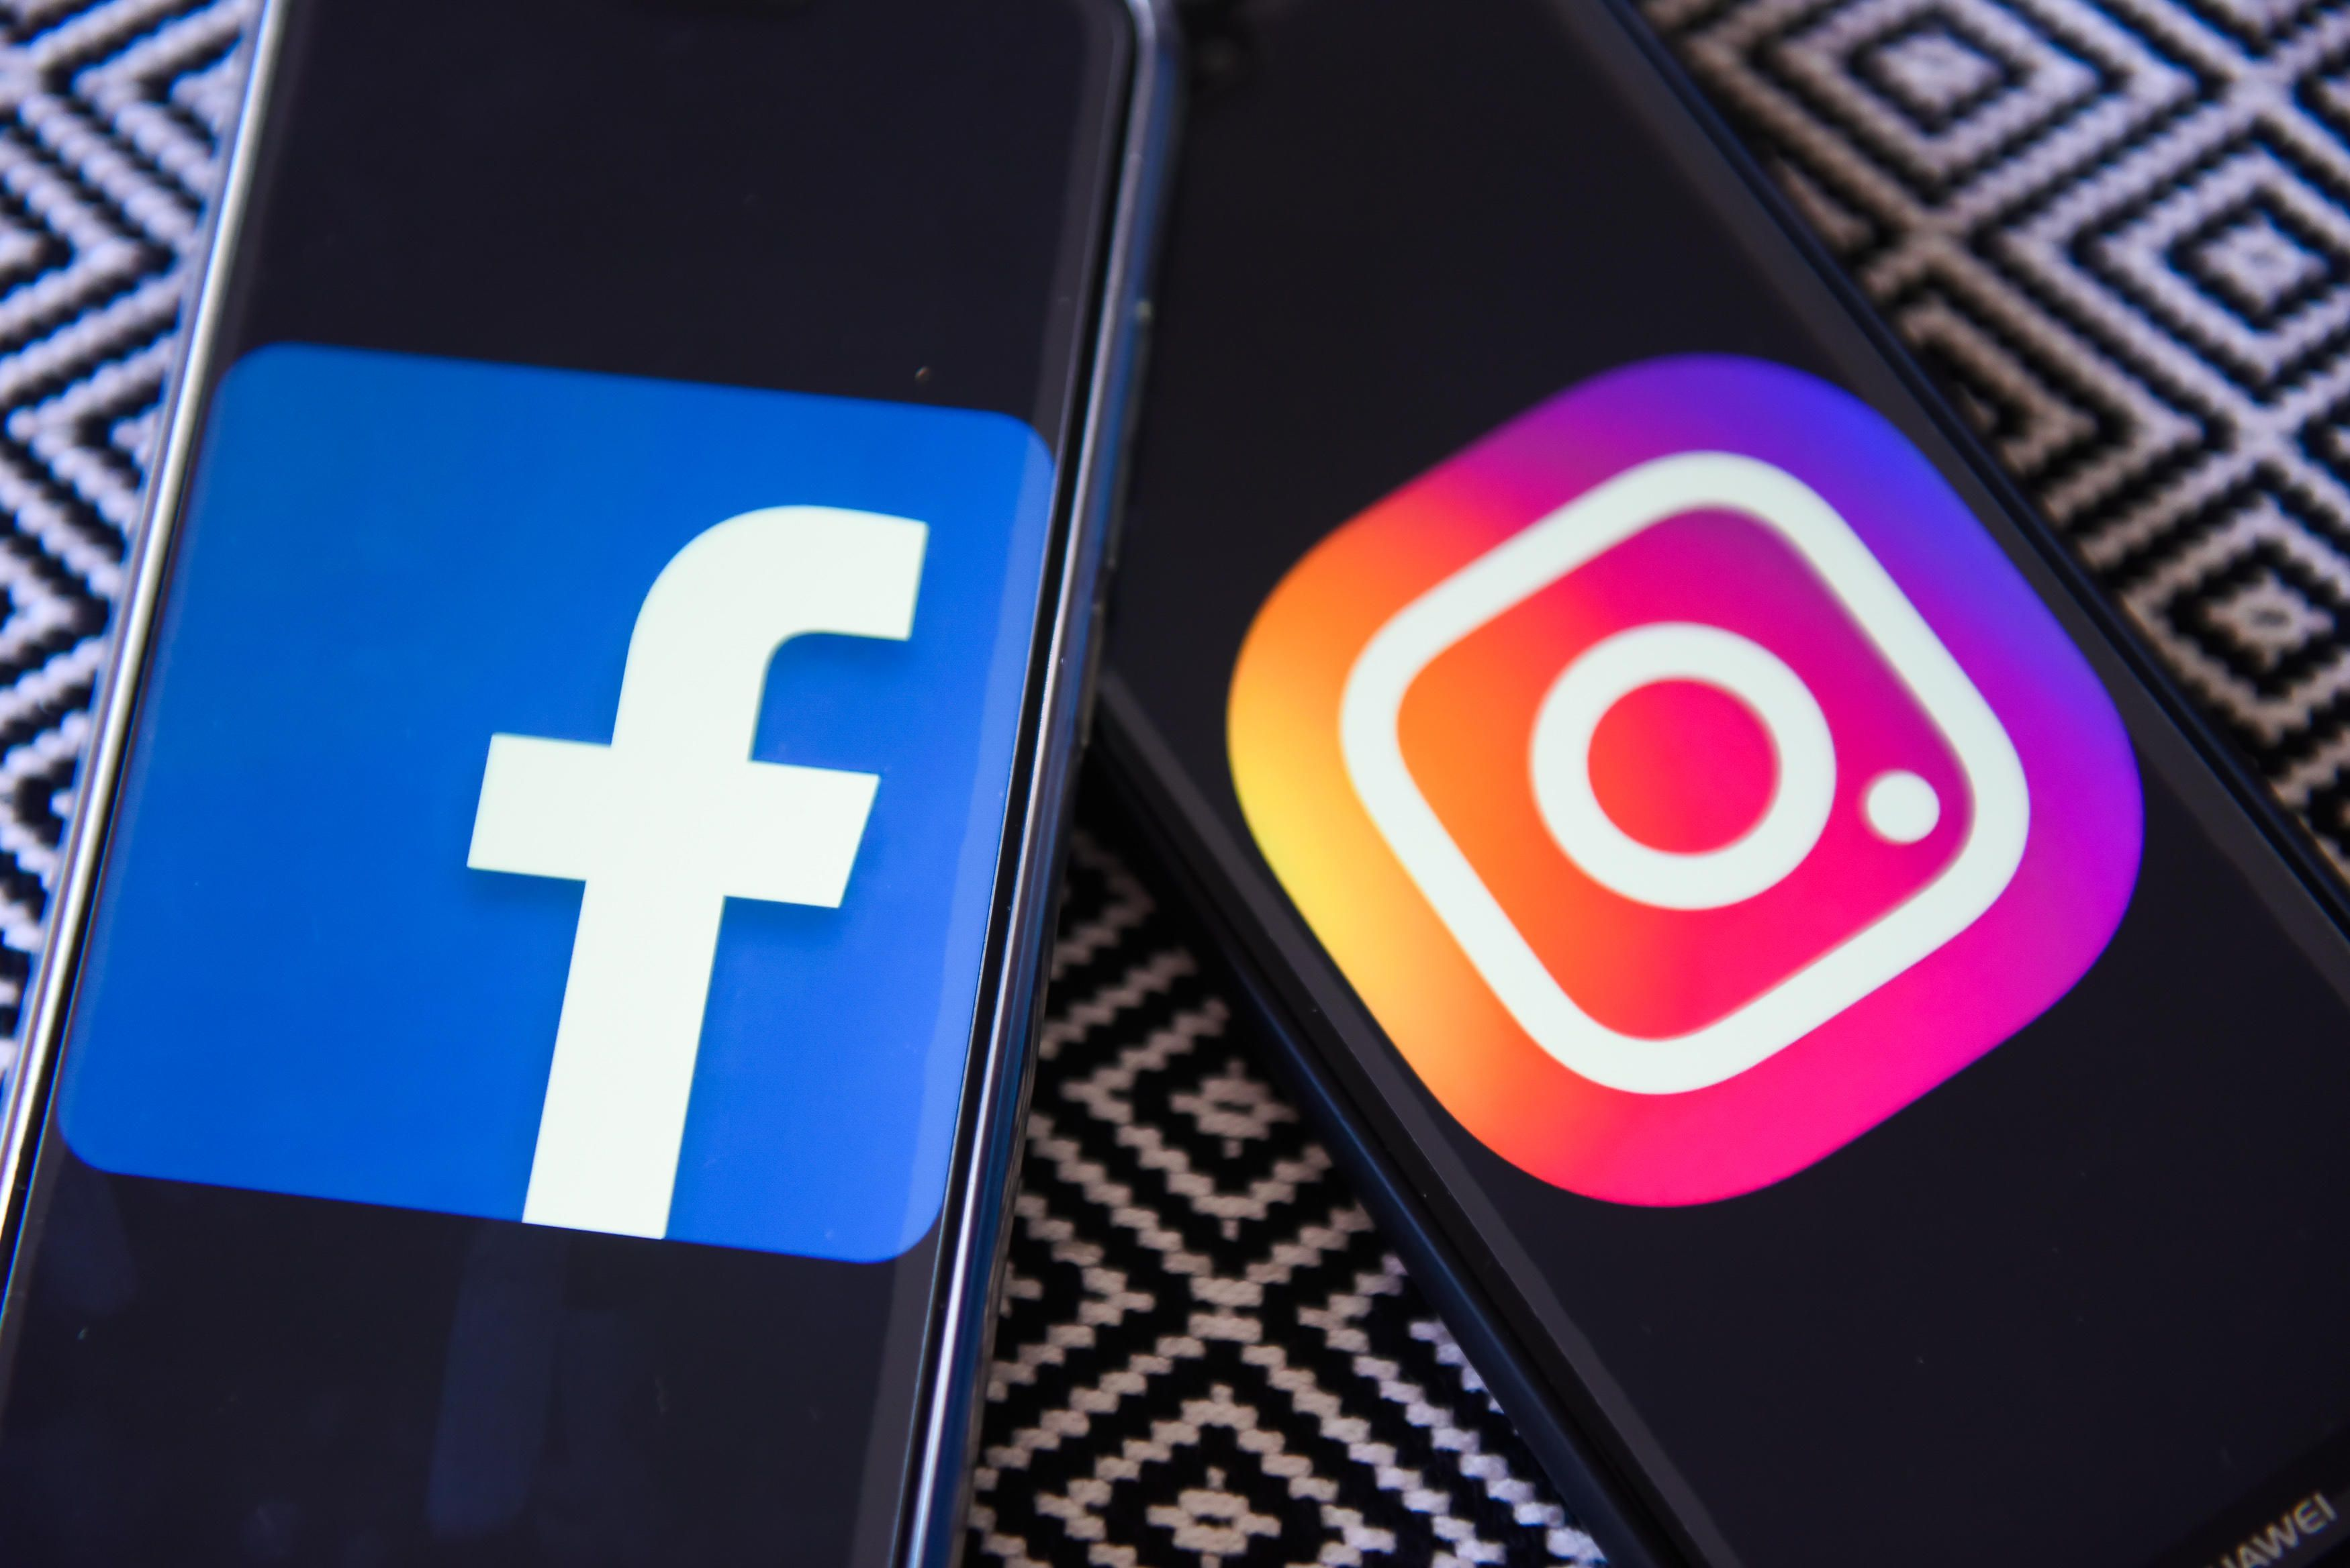 Facebook and Instagram logos are seen on a mobile phones